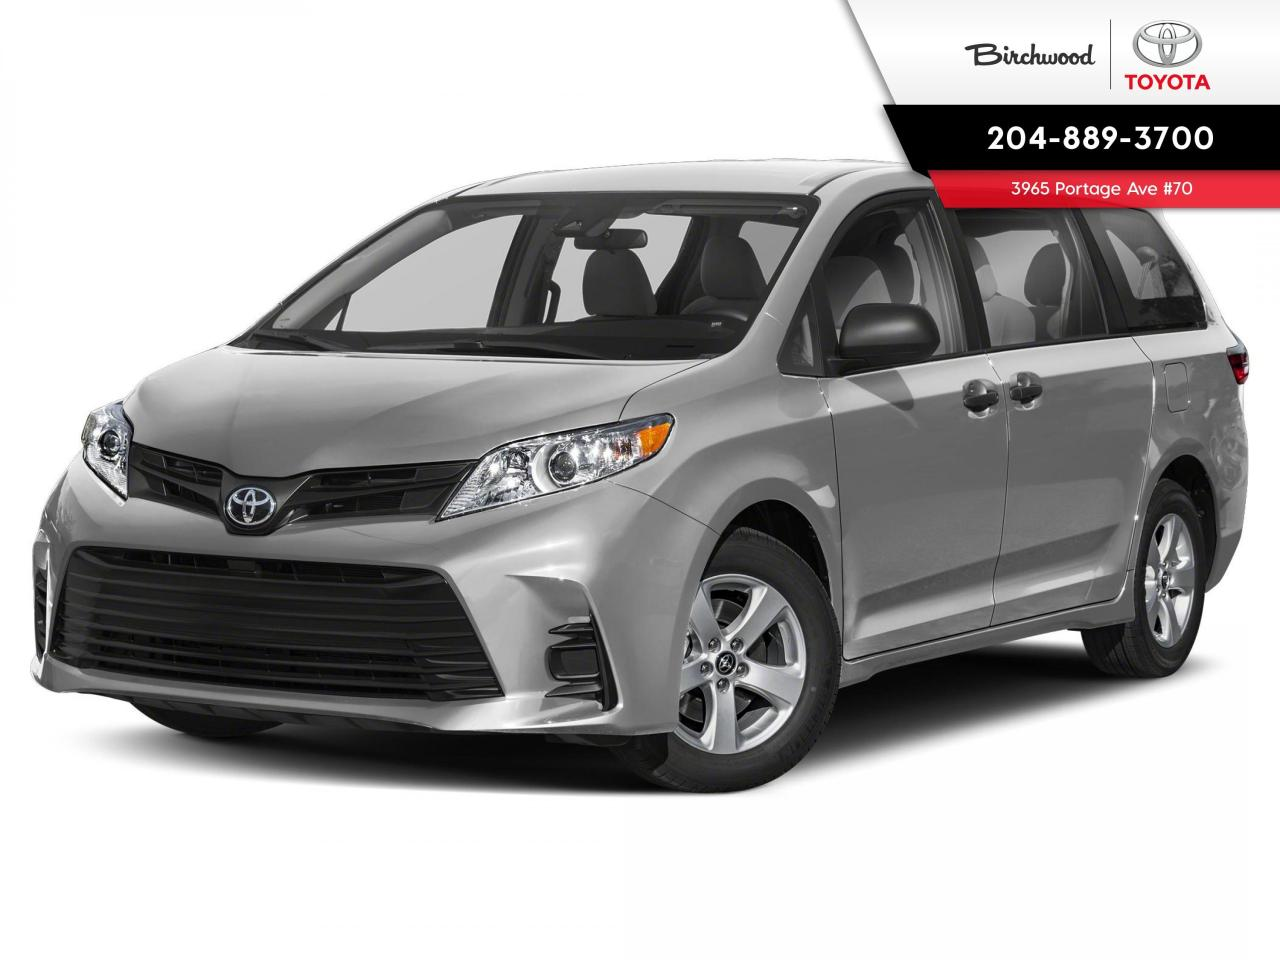 used 2020 toyota sienna le 8pass v6 for sale in winnipeg, manitoba carpages.ca